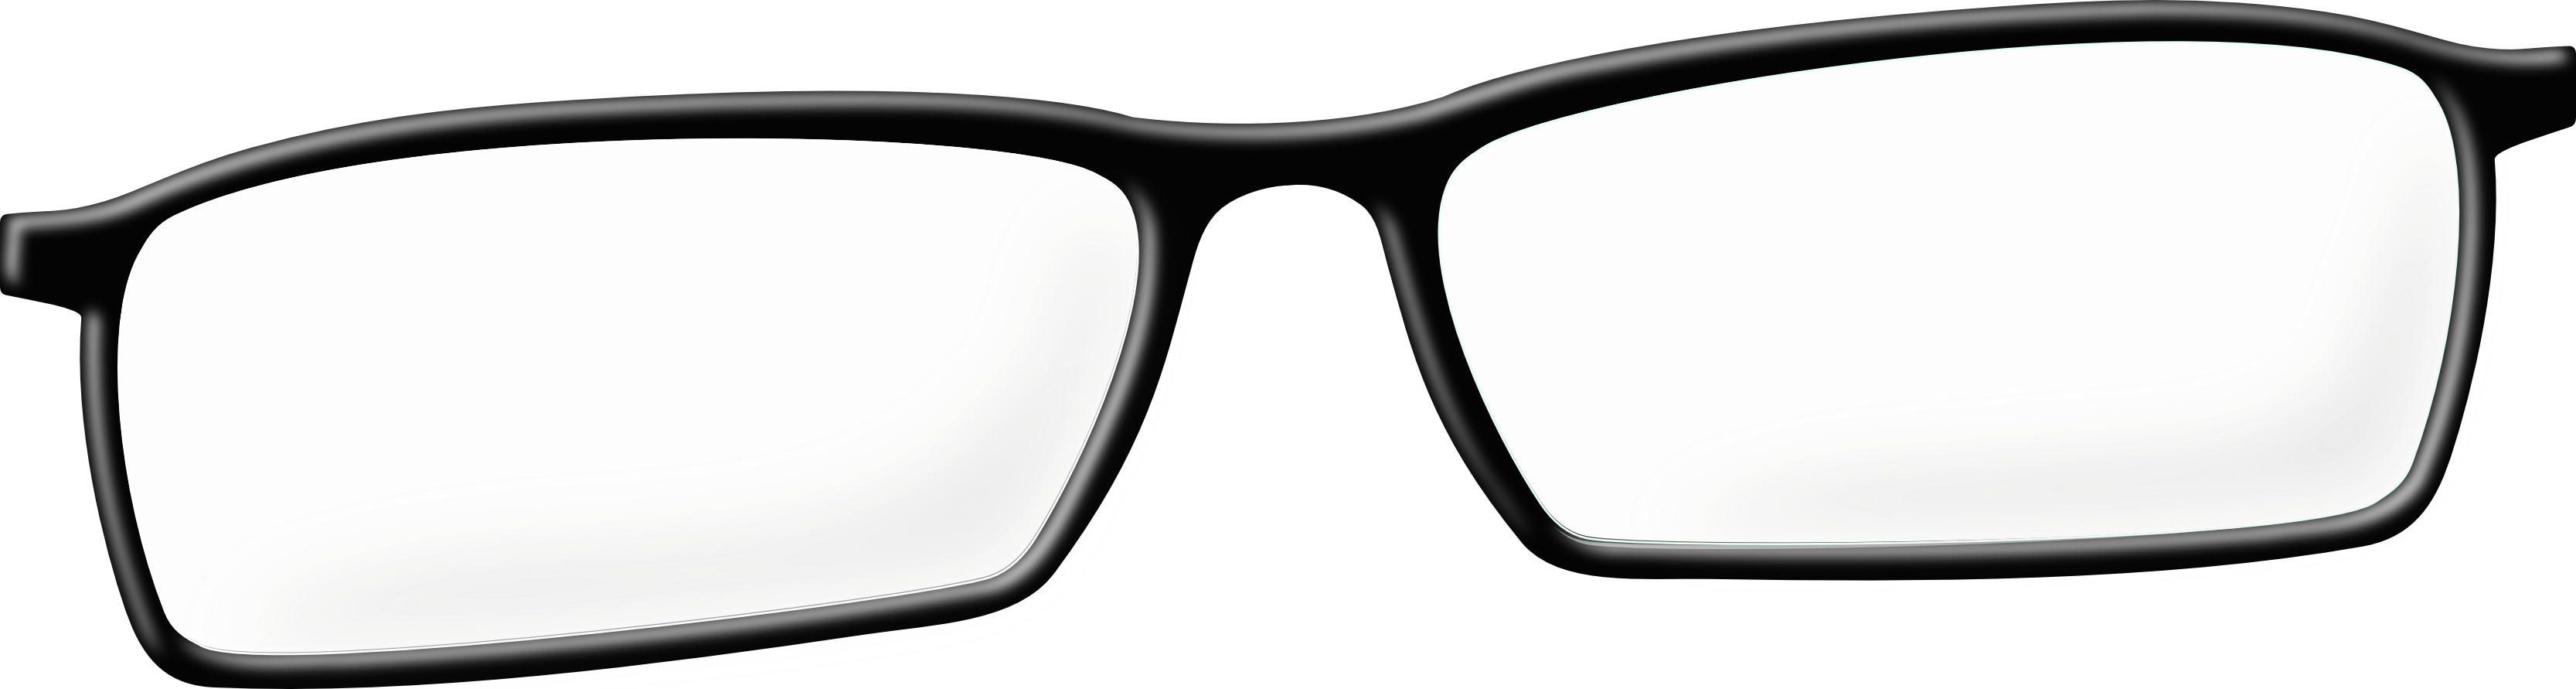 Anime glasses png. Image purepng free transparent